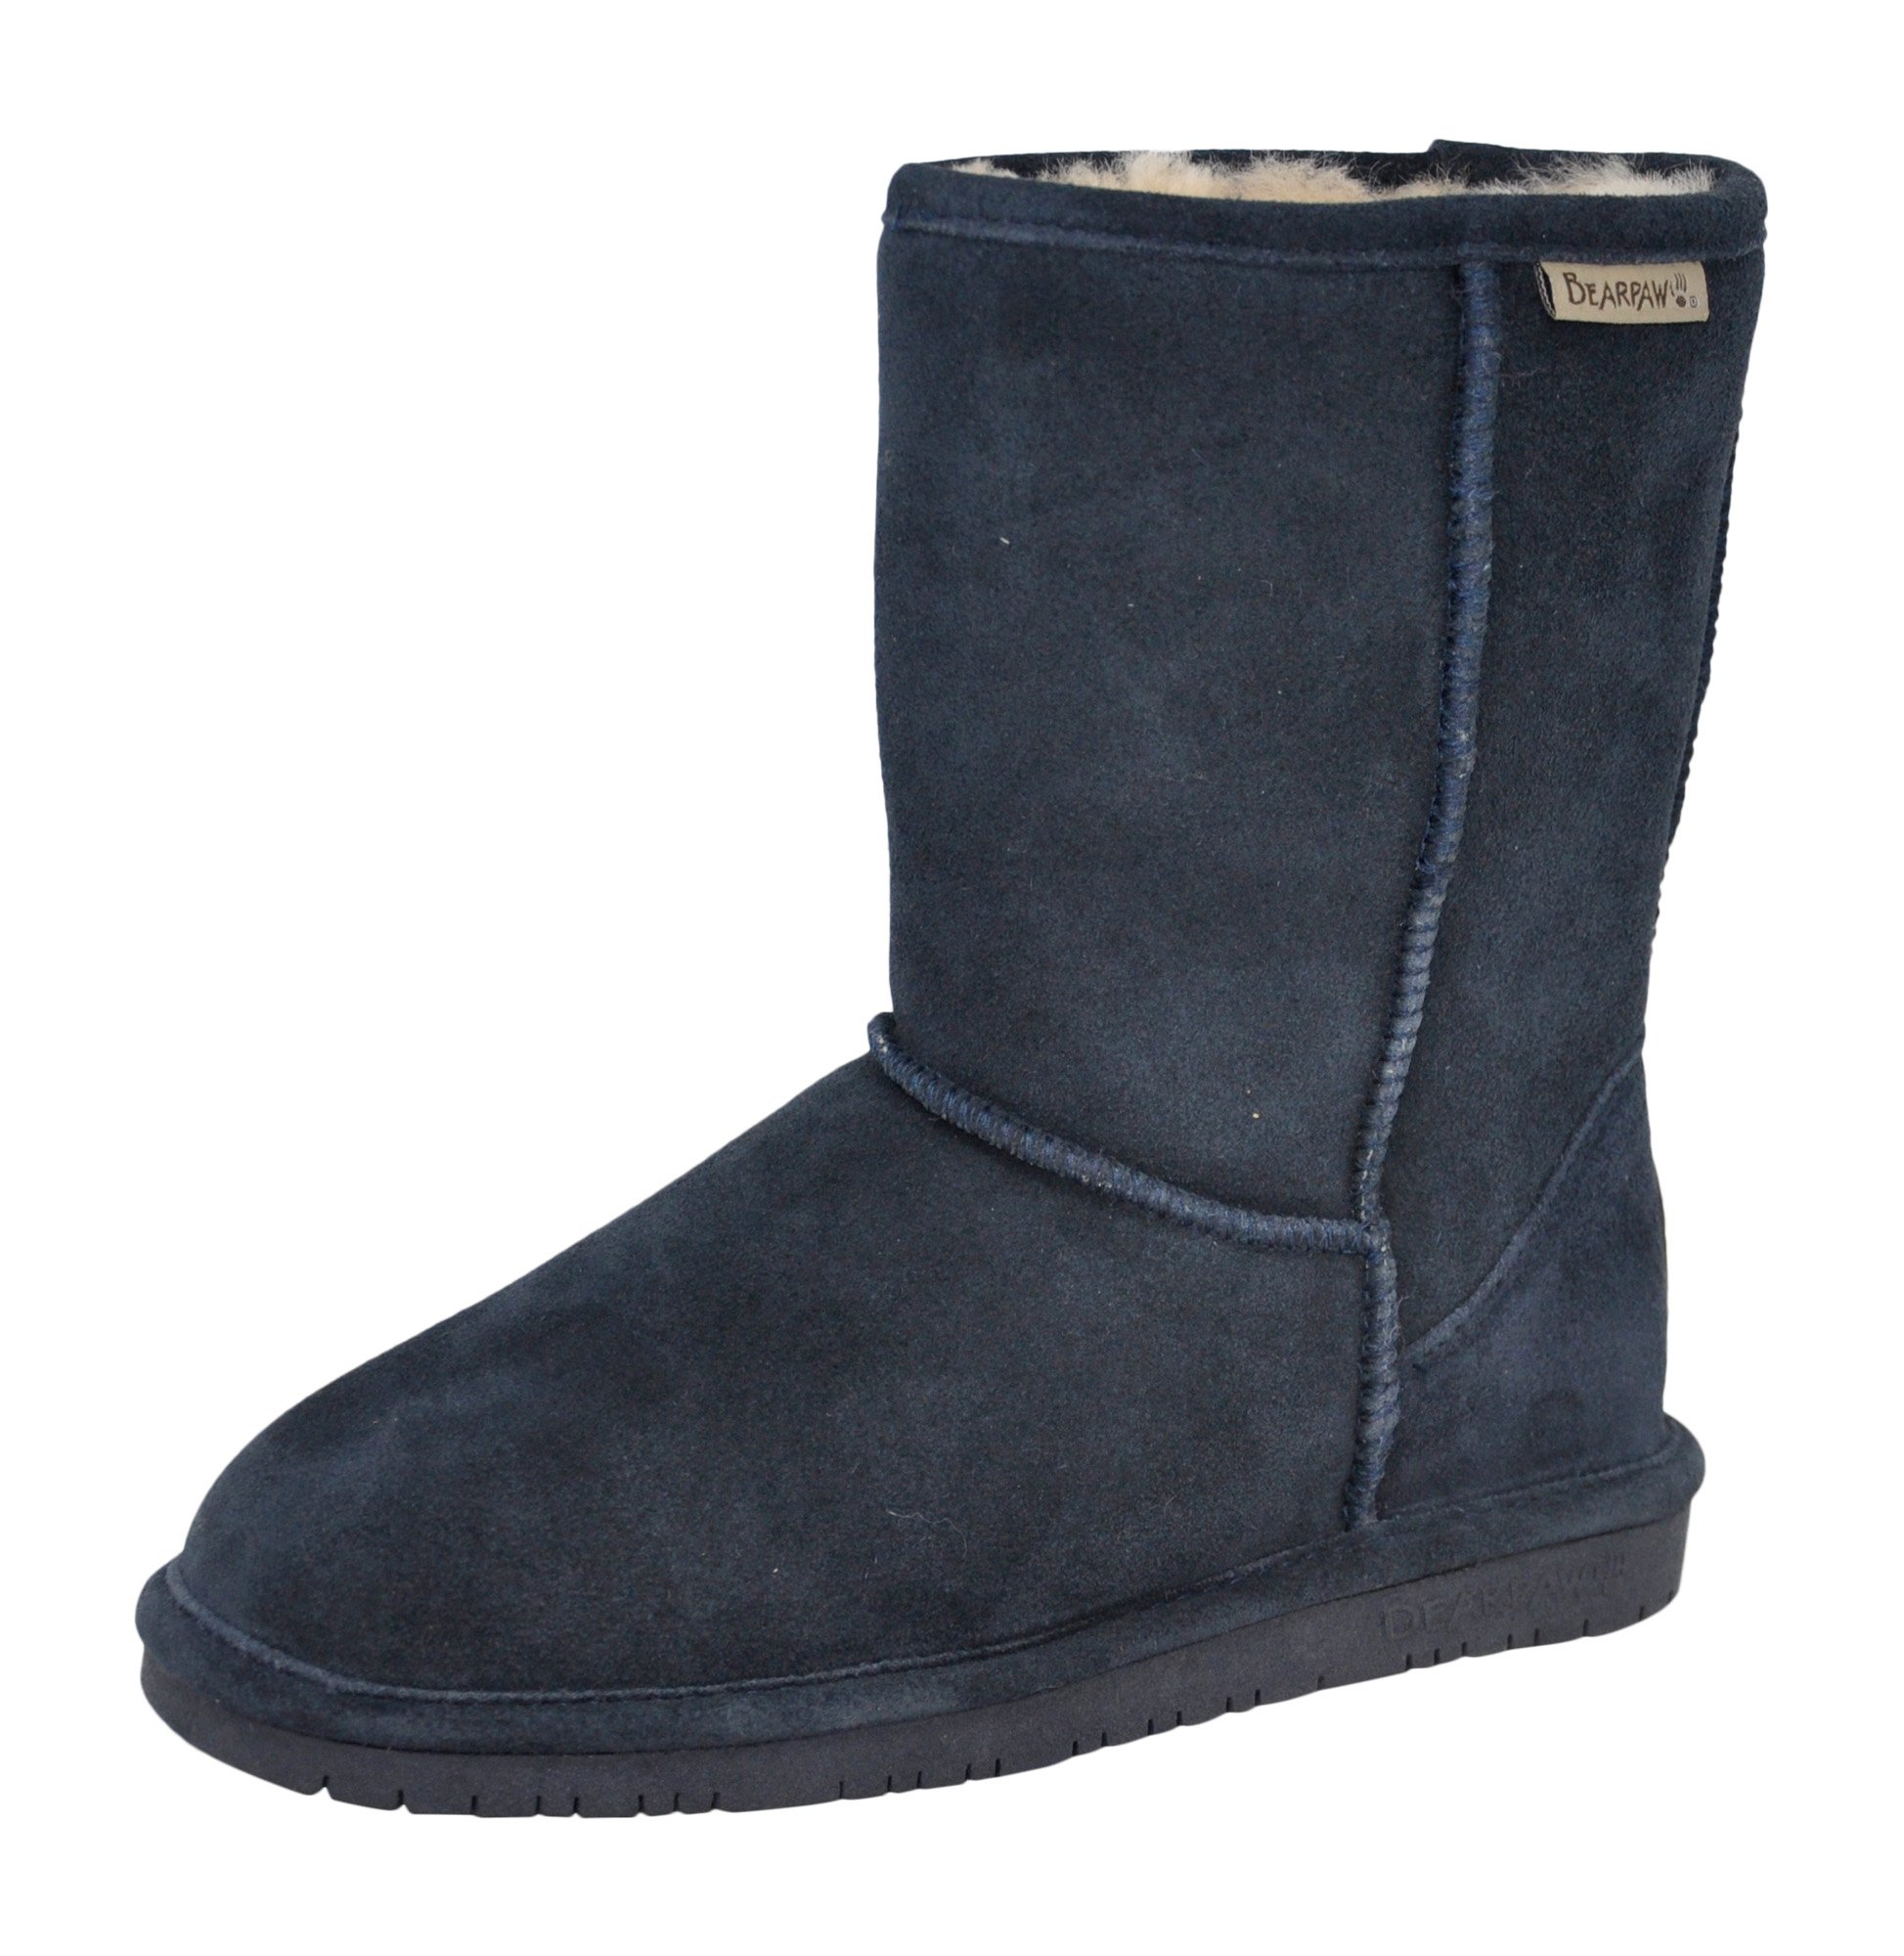 BEARPAW Women's Emma Short Winter Boot, Navy, 10 B(M) US